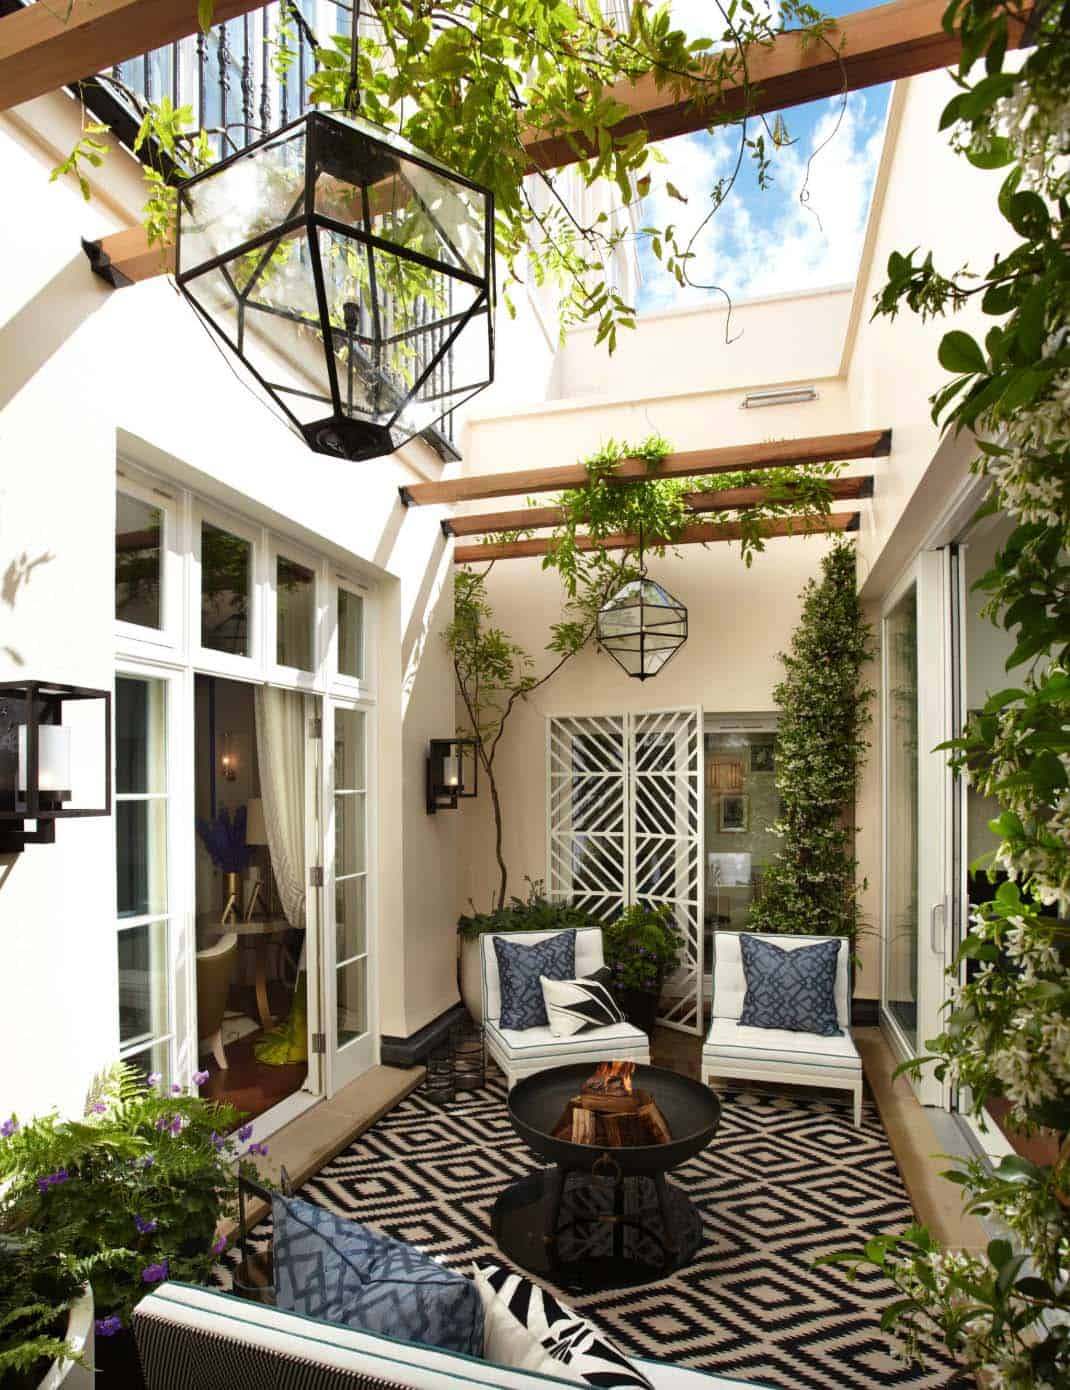 33 Fabulous Ideas For Creating Beautiful Outdoor Living Spaces on Garden Living Space id=50585